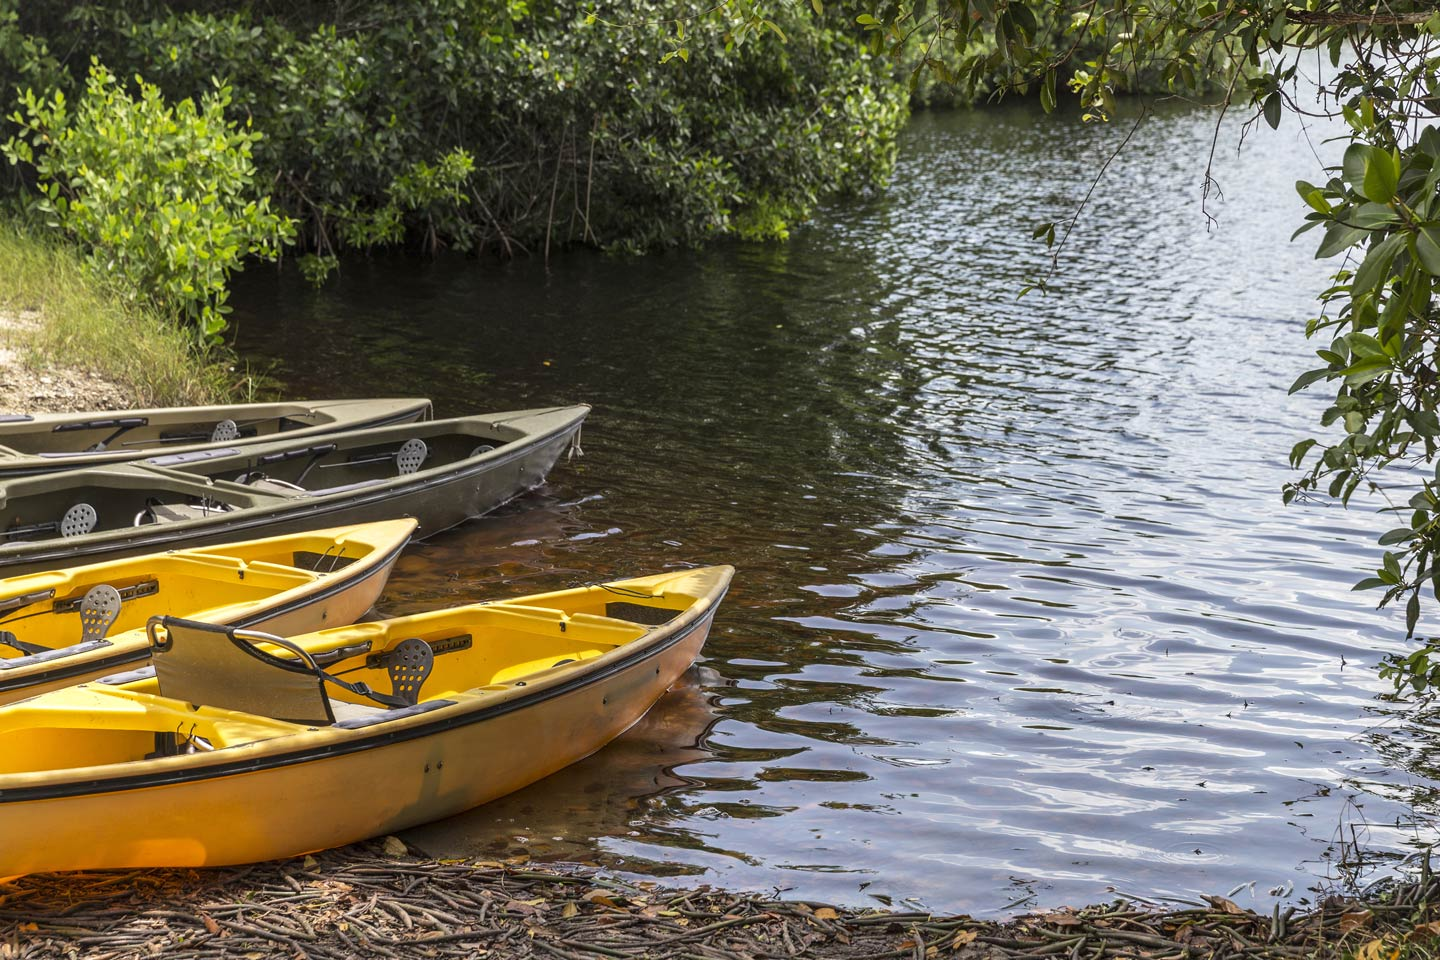 Kayaks resting along the bank of Florida's mangrove waters